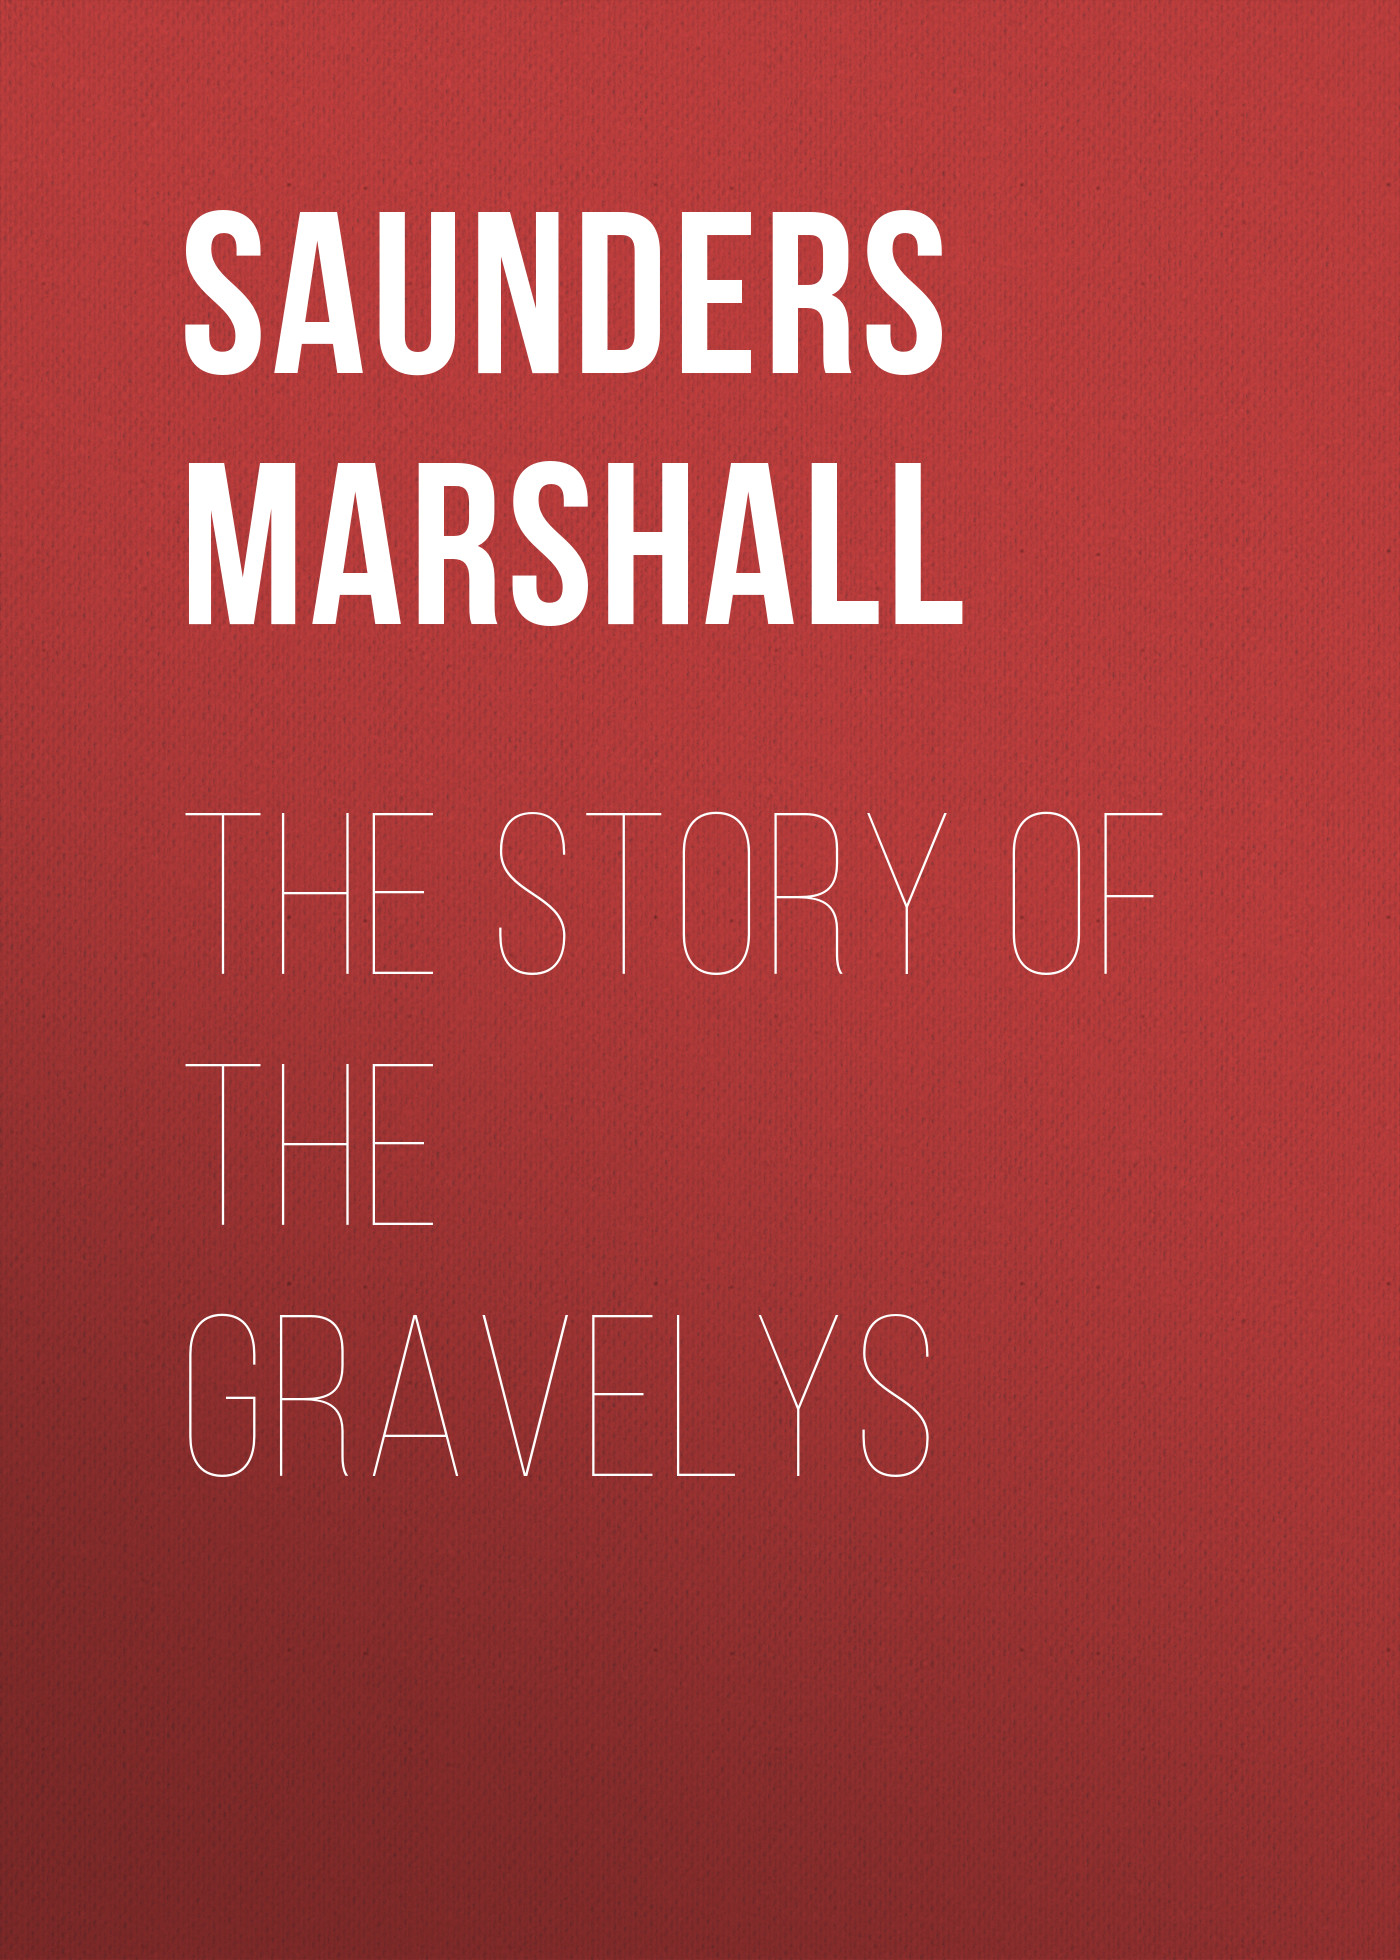 Saunders Marshall The Story of the Gravelys